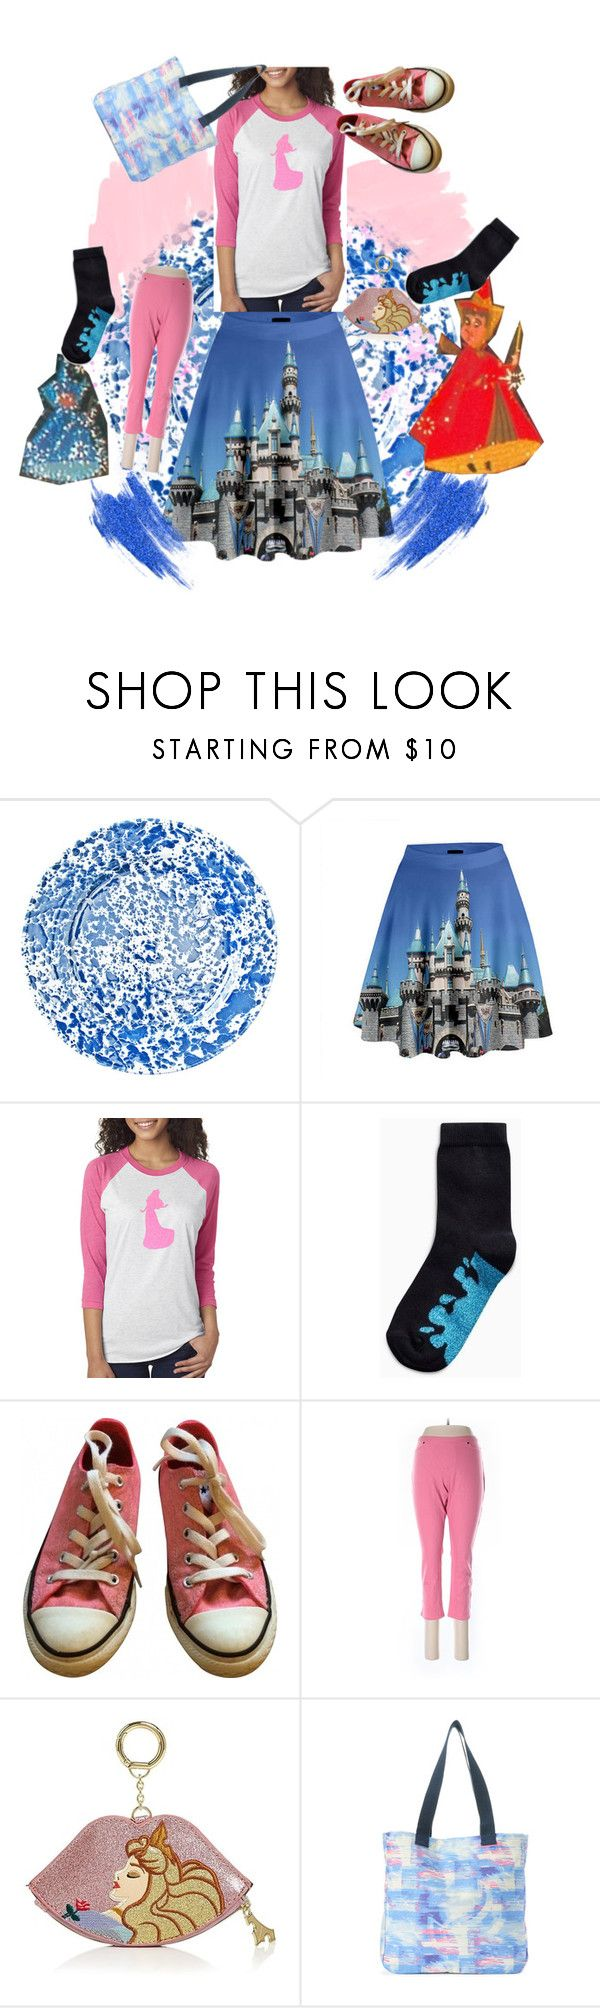 """One giant mess"" by lerp ❤ liked on Polyvore featuring Kate Sheridan, Converse, Danielle Nicole and Love This Life"